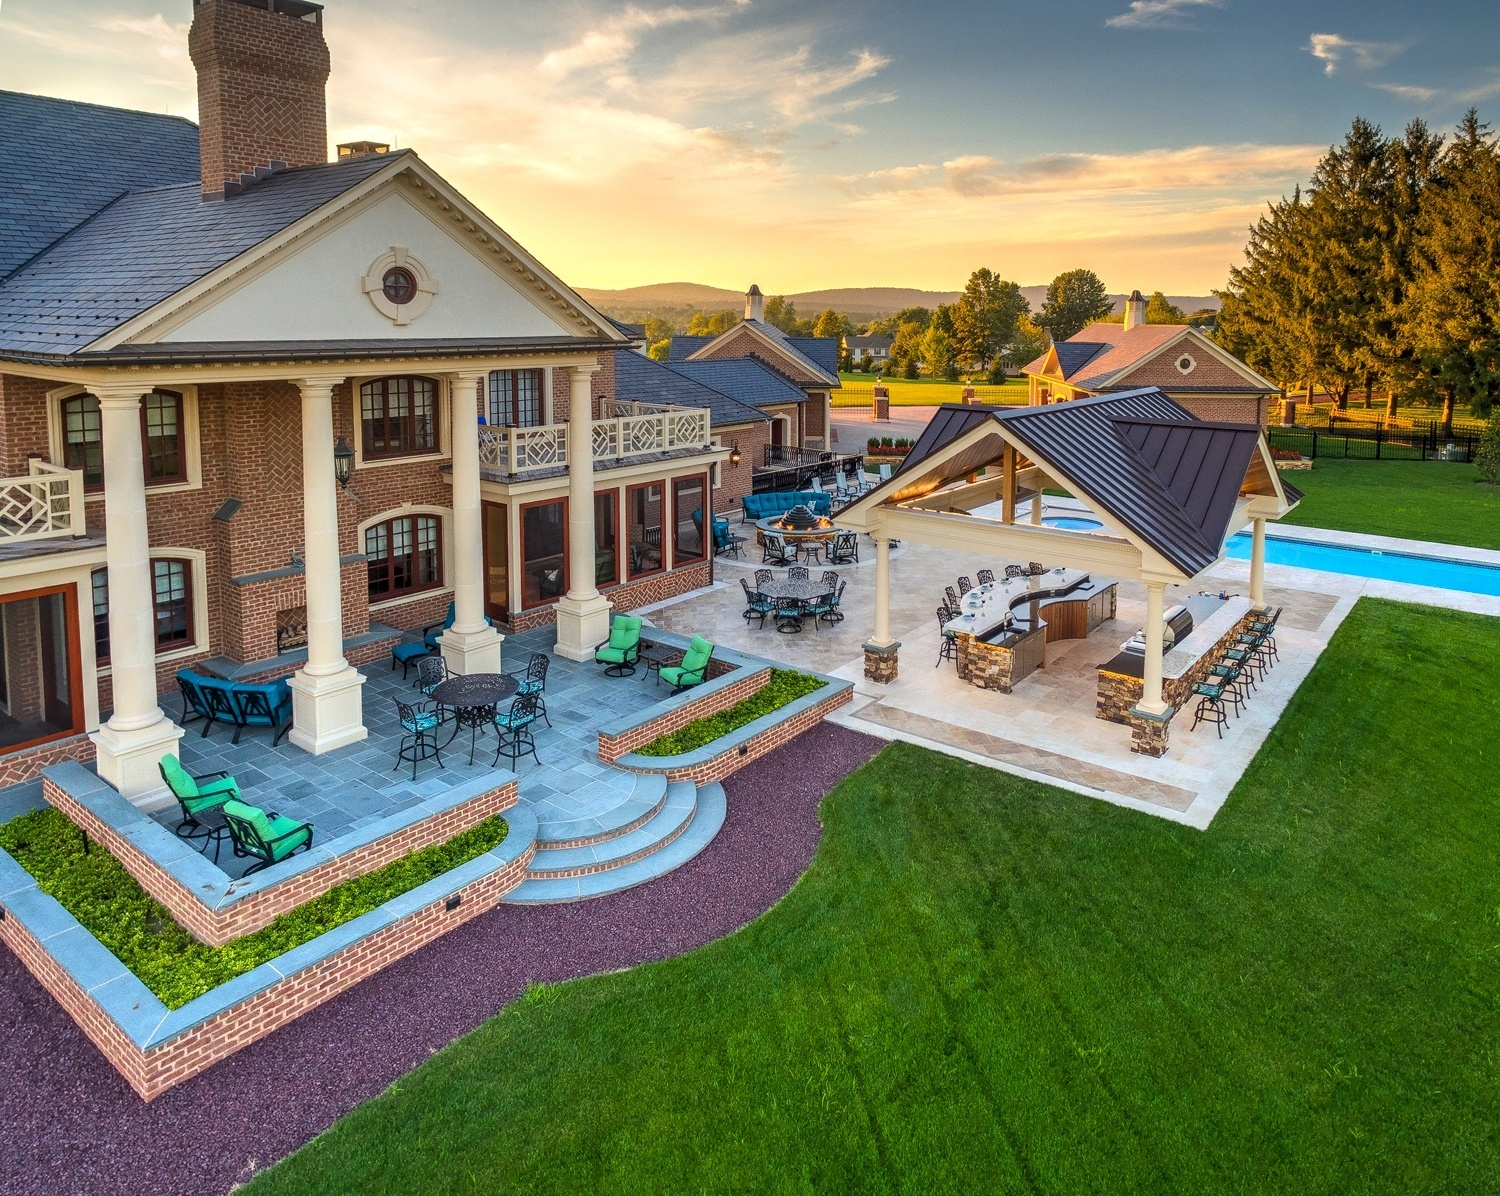 Earth, Turf, & Wood offers hardscape and landscape maintenance services for their clients.